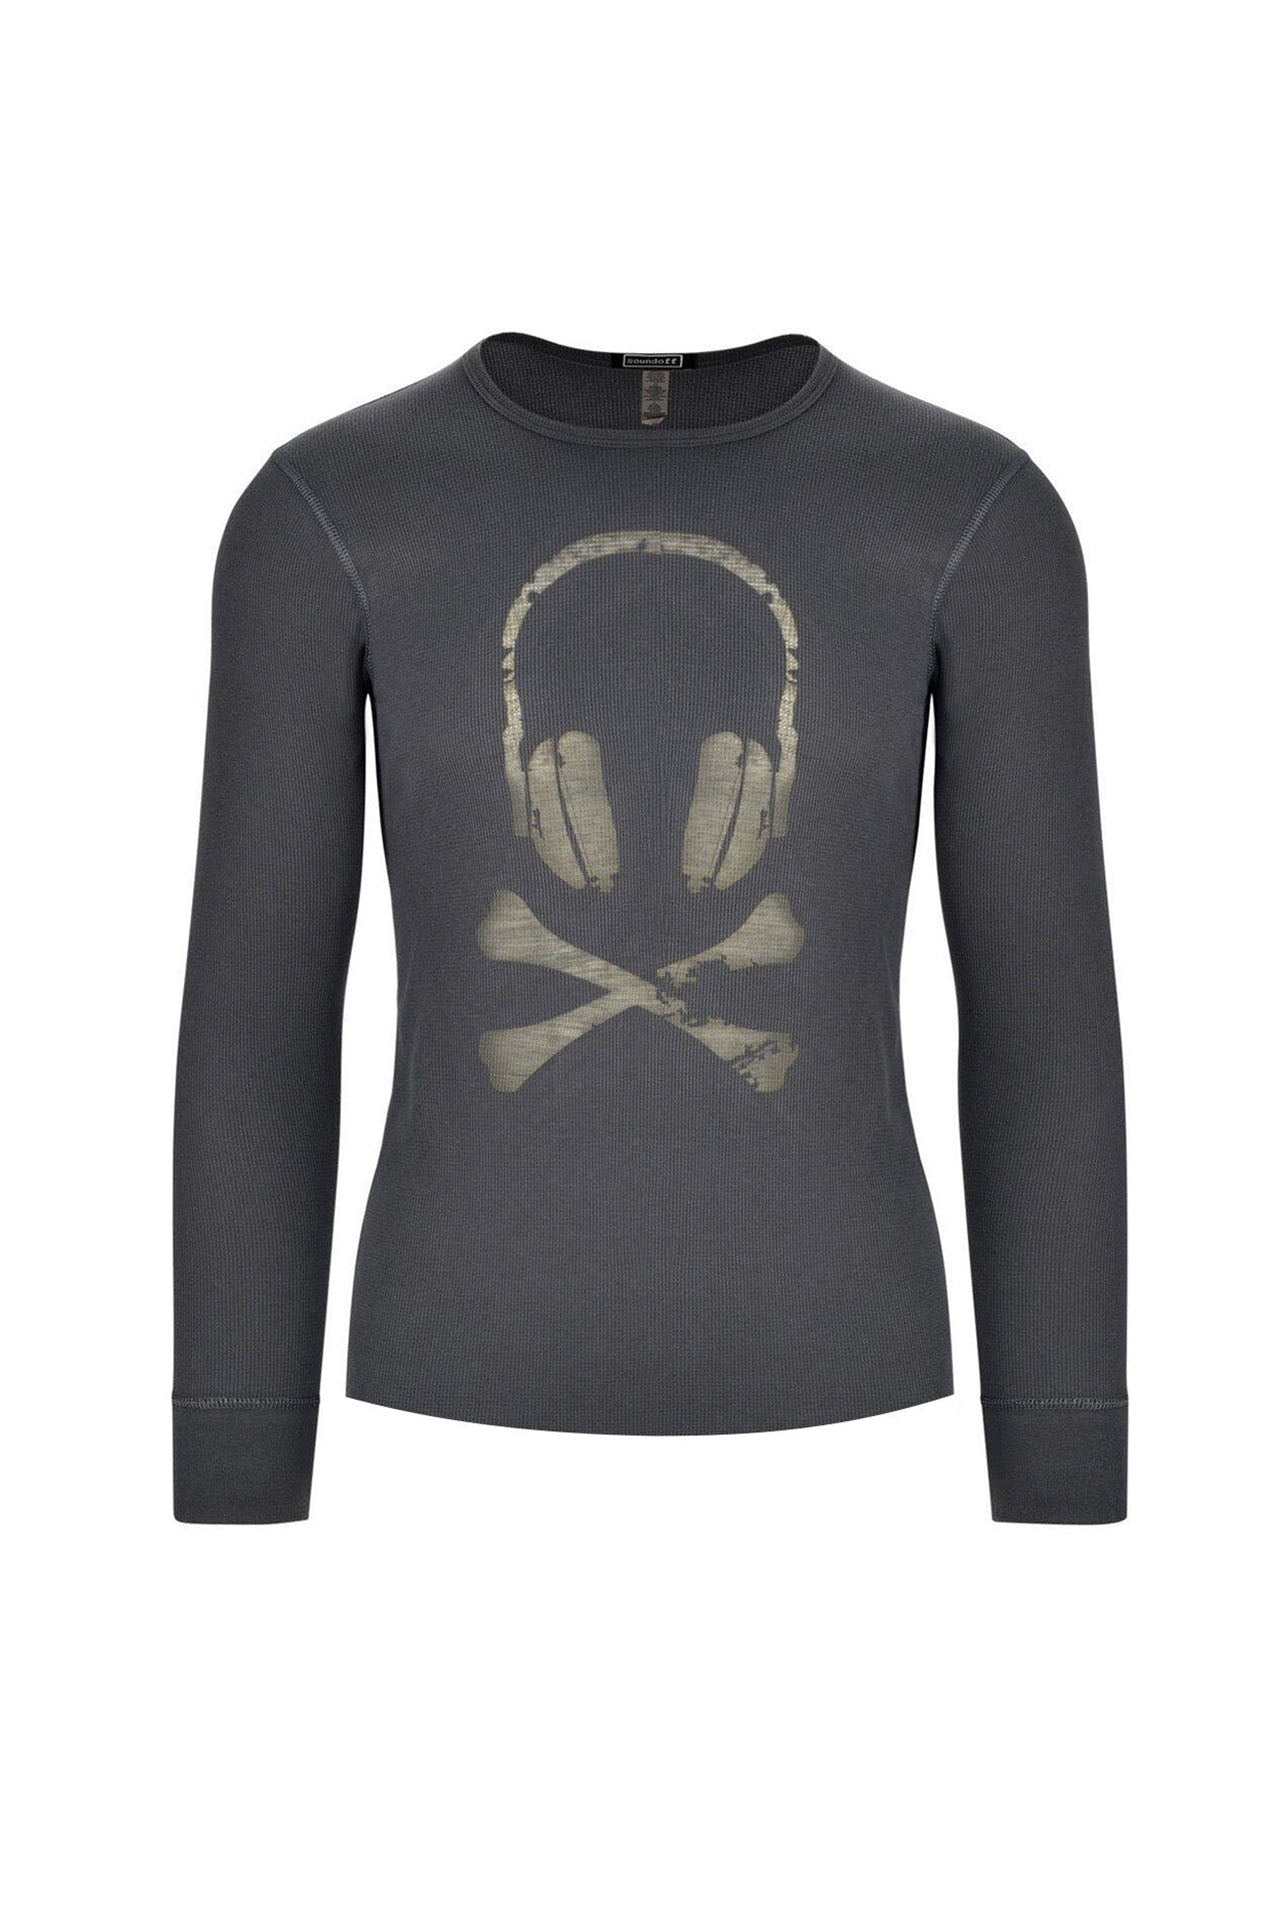 BADASS Headphone thermal long sleeve shirt